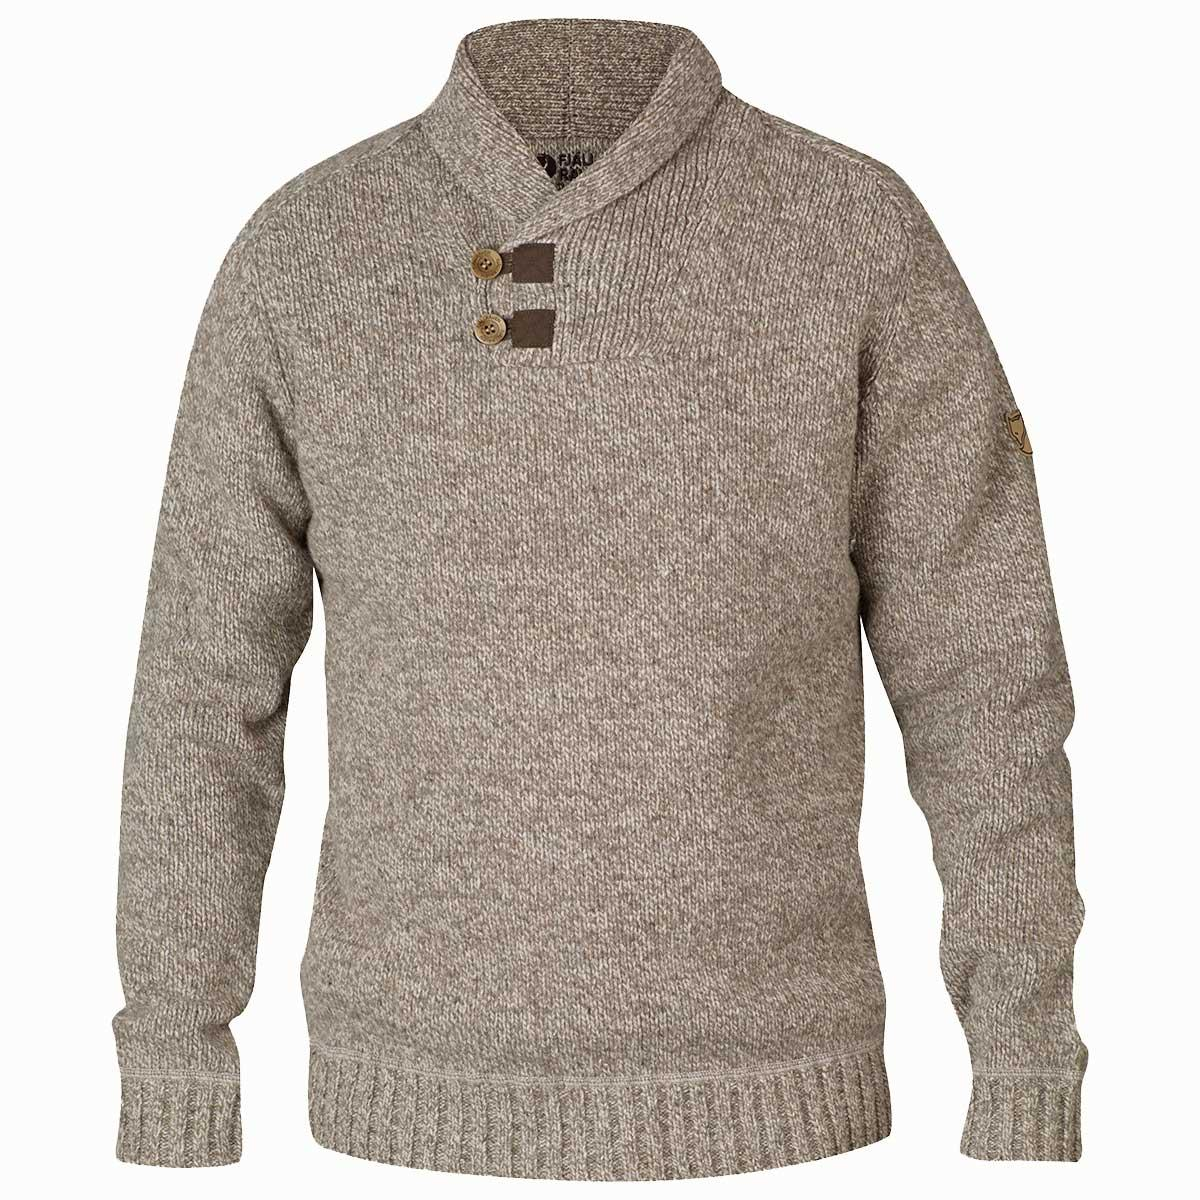 Fjallraven men's Lada Sweater in Fog front view